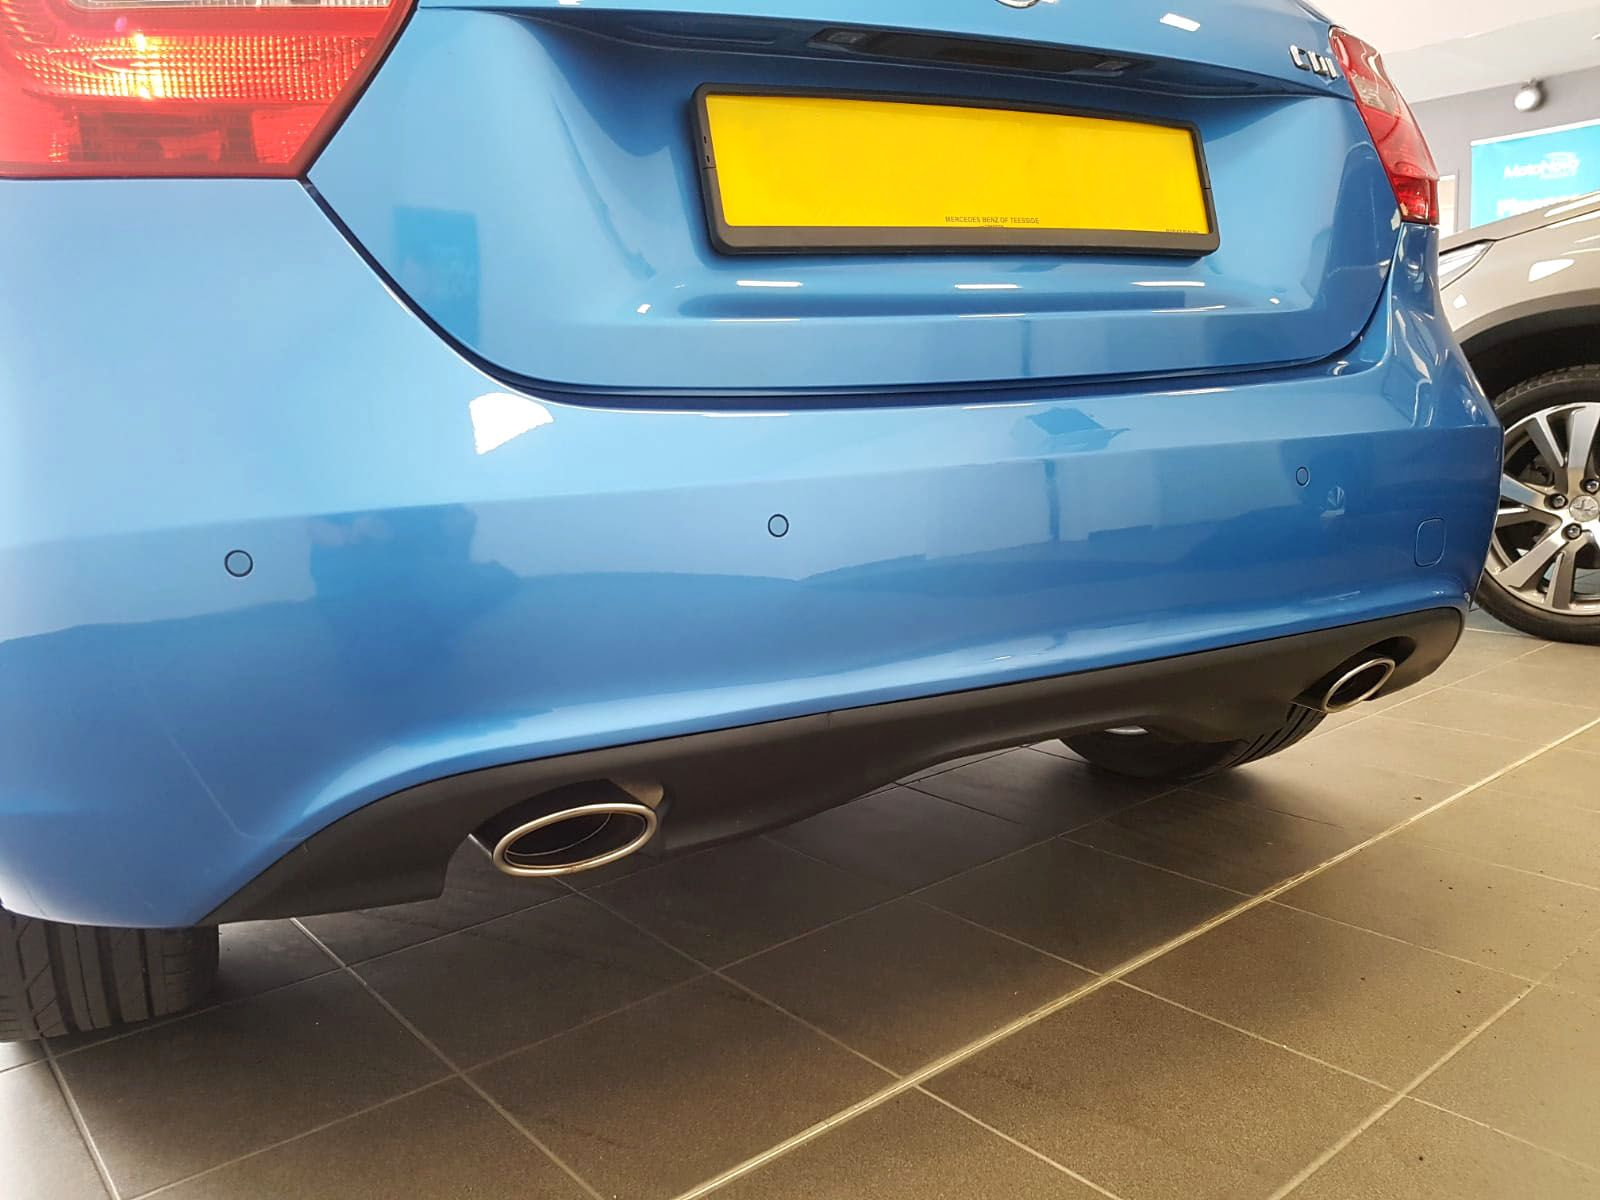 Mercedes A Class - Flush painted parking sensors installed